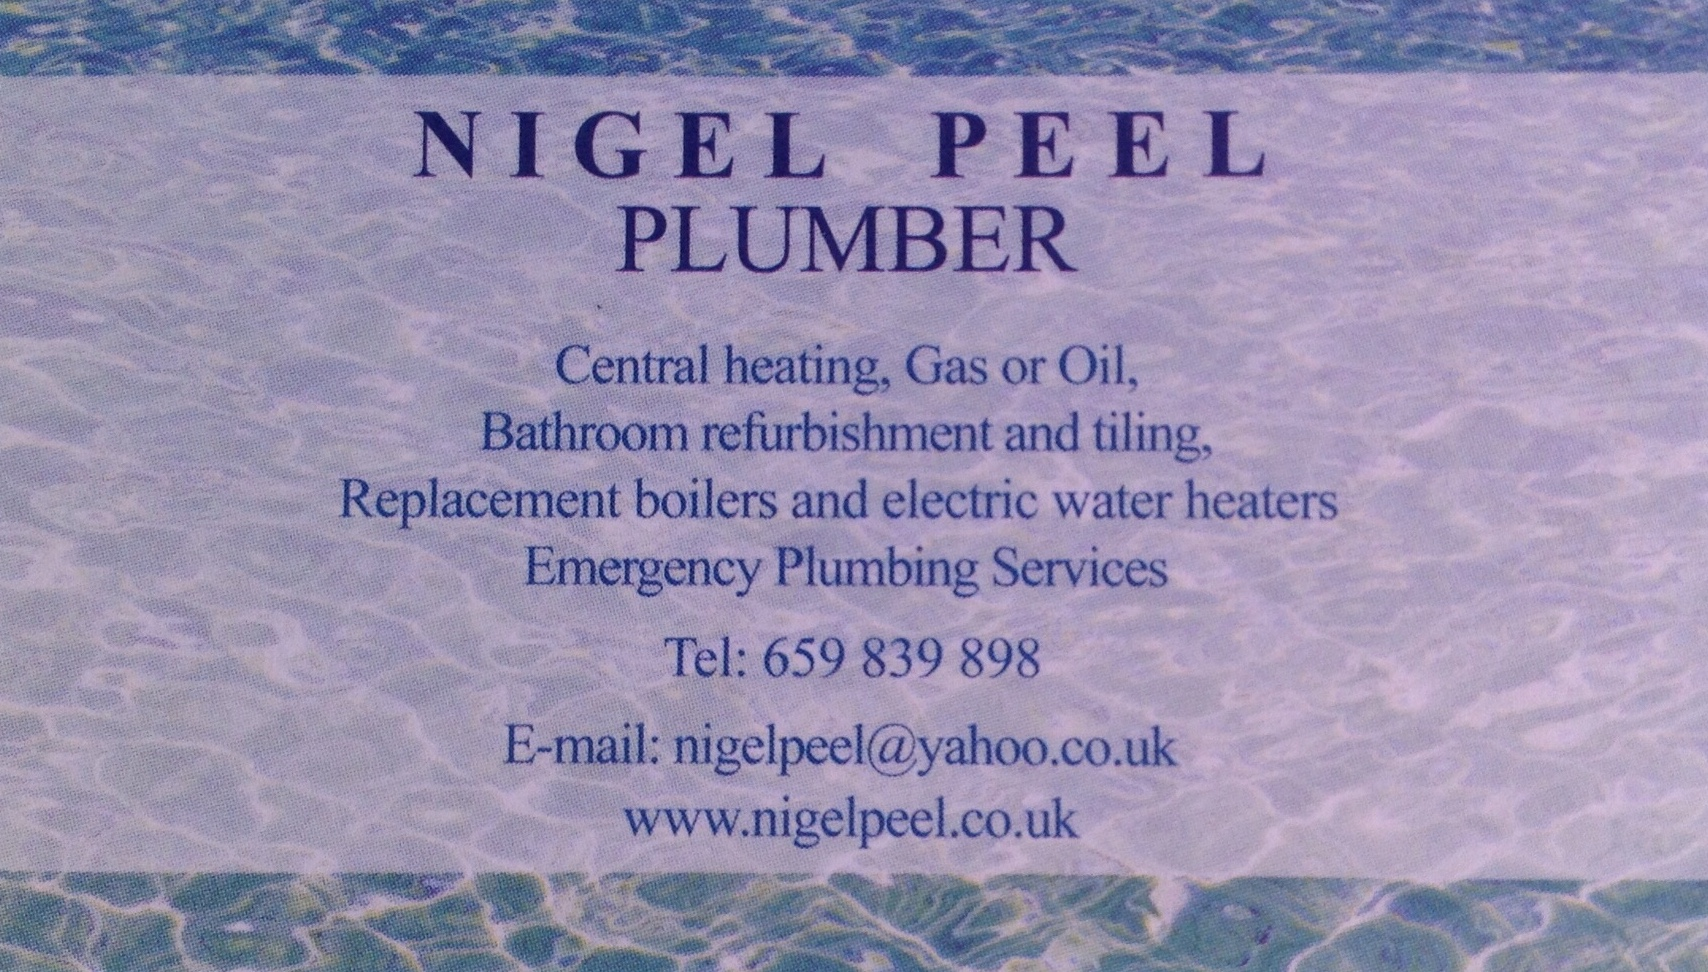 Nigel Peel, Plumber and Heating Engineer